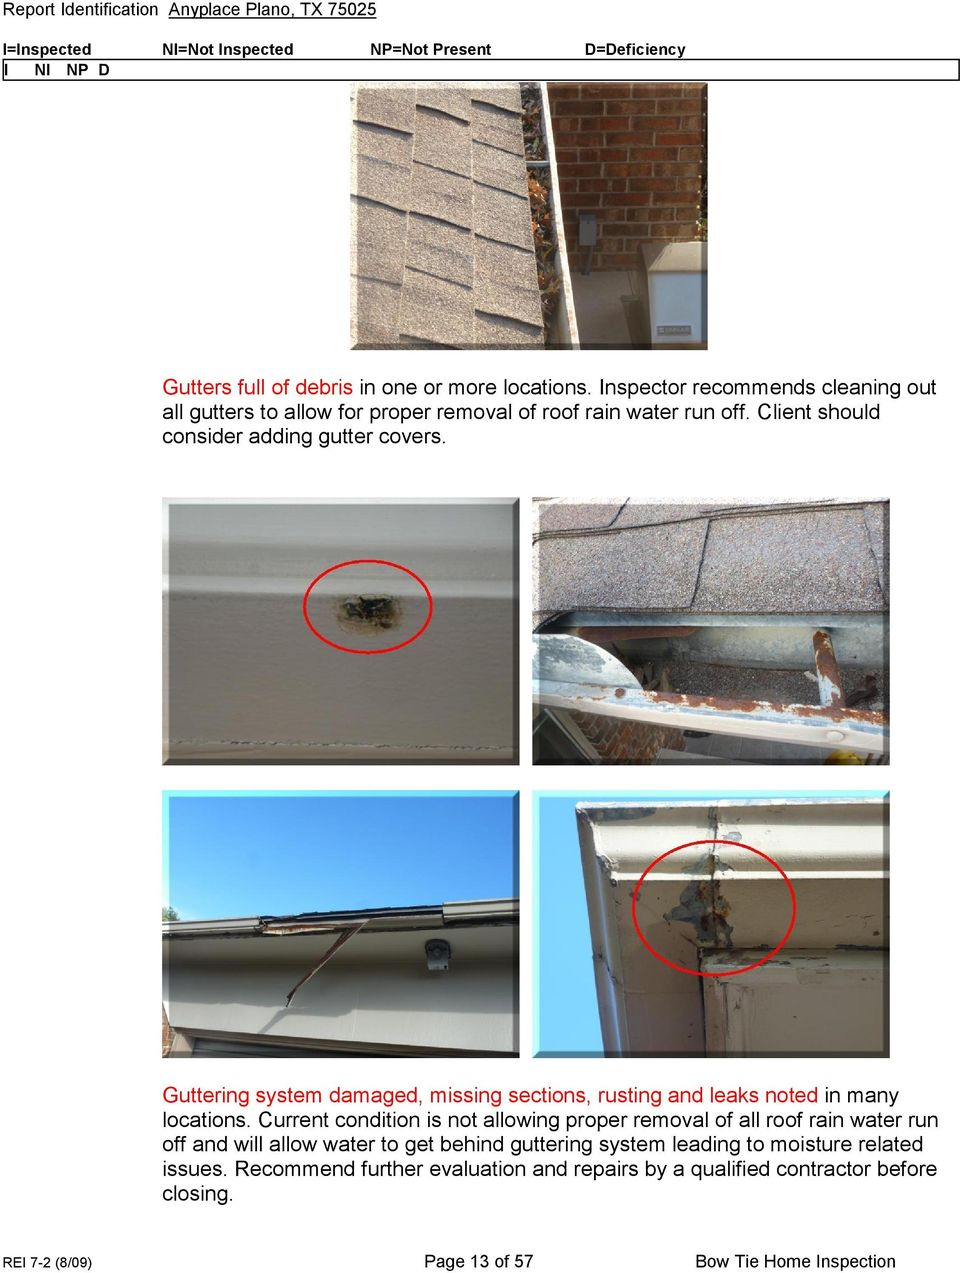 Guttering system damaged, missing sections, rusting and leaks noted in many locations.